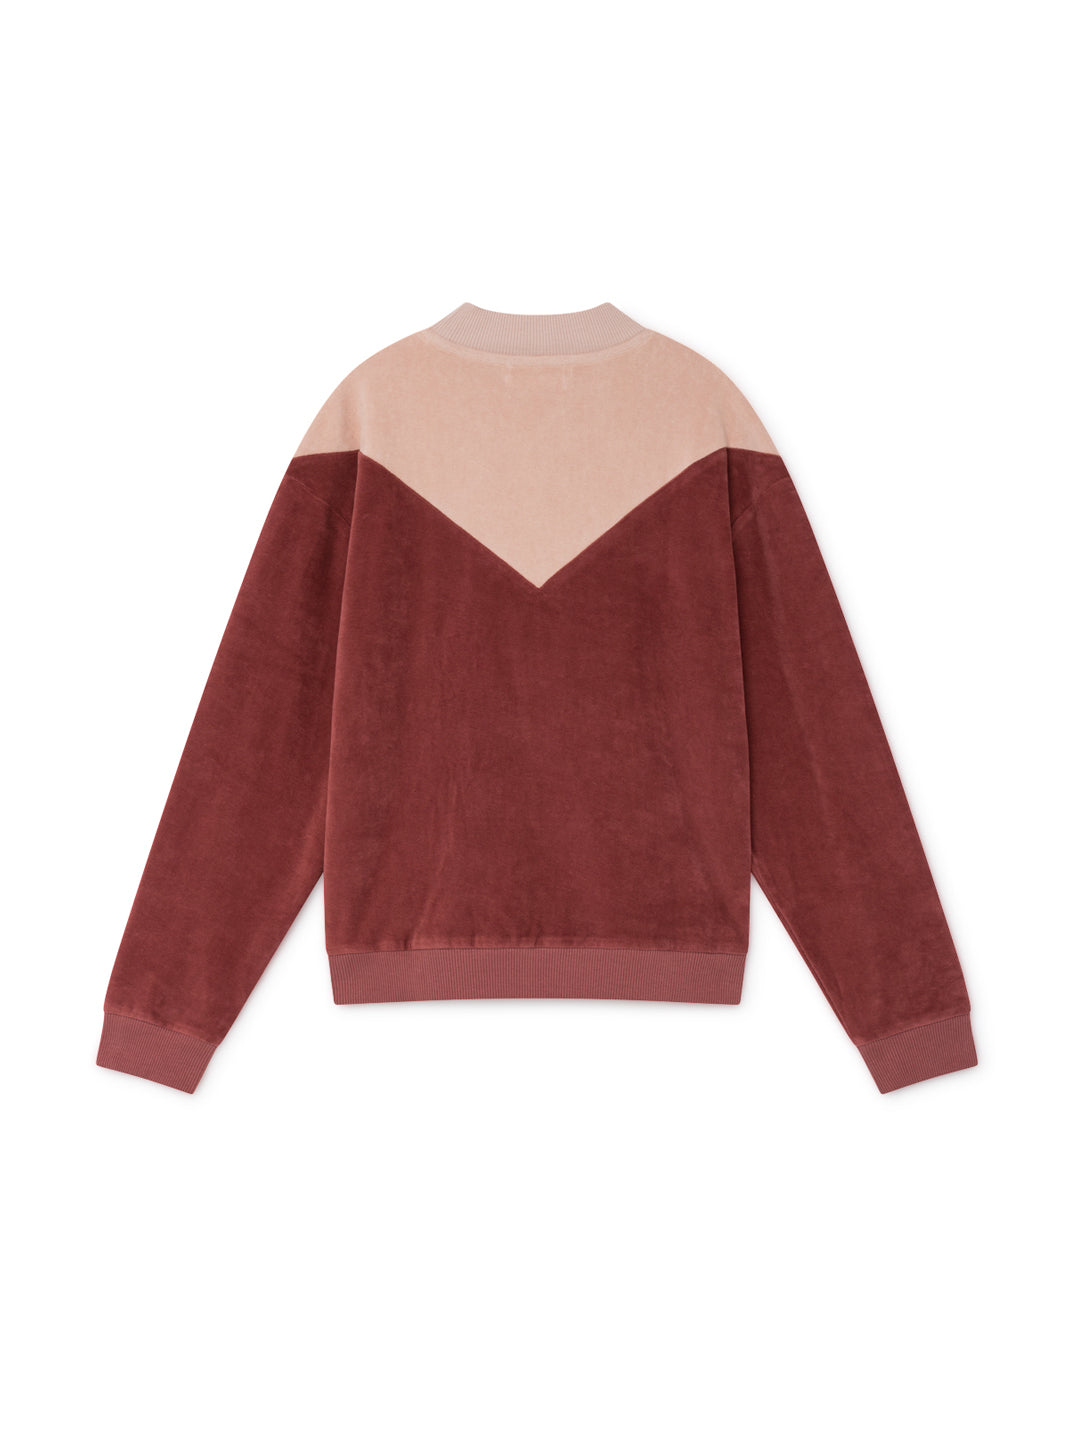 TWOTHIRDS Womens Sweat: Melide - Rose back